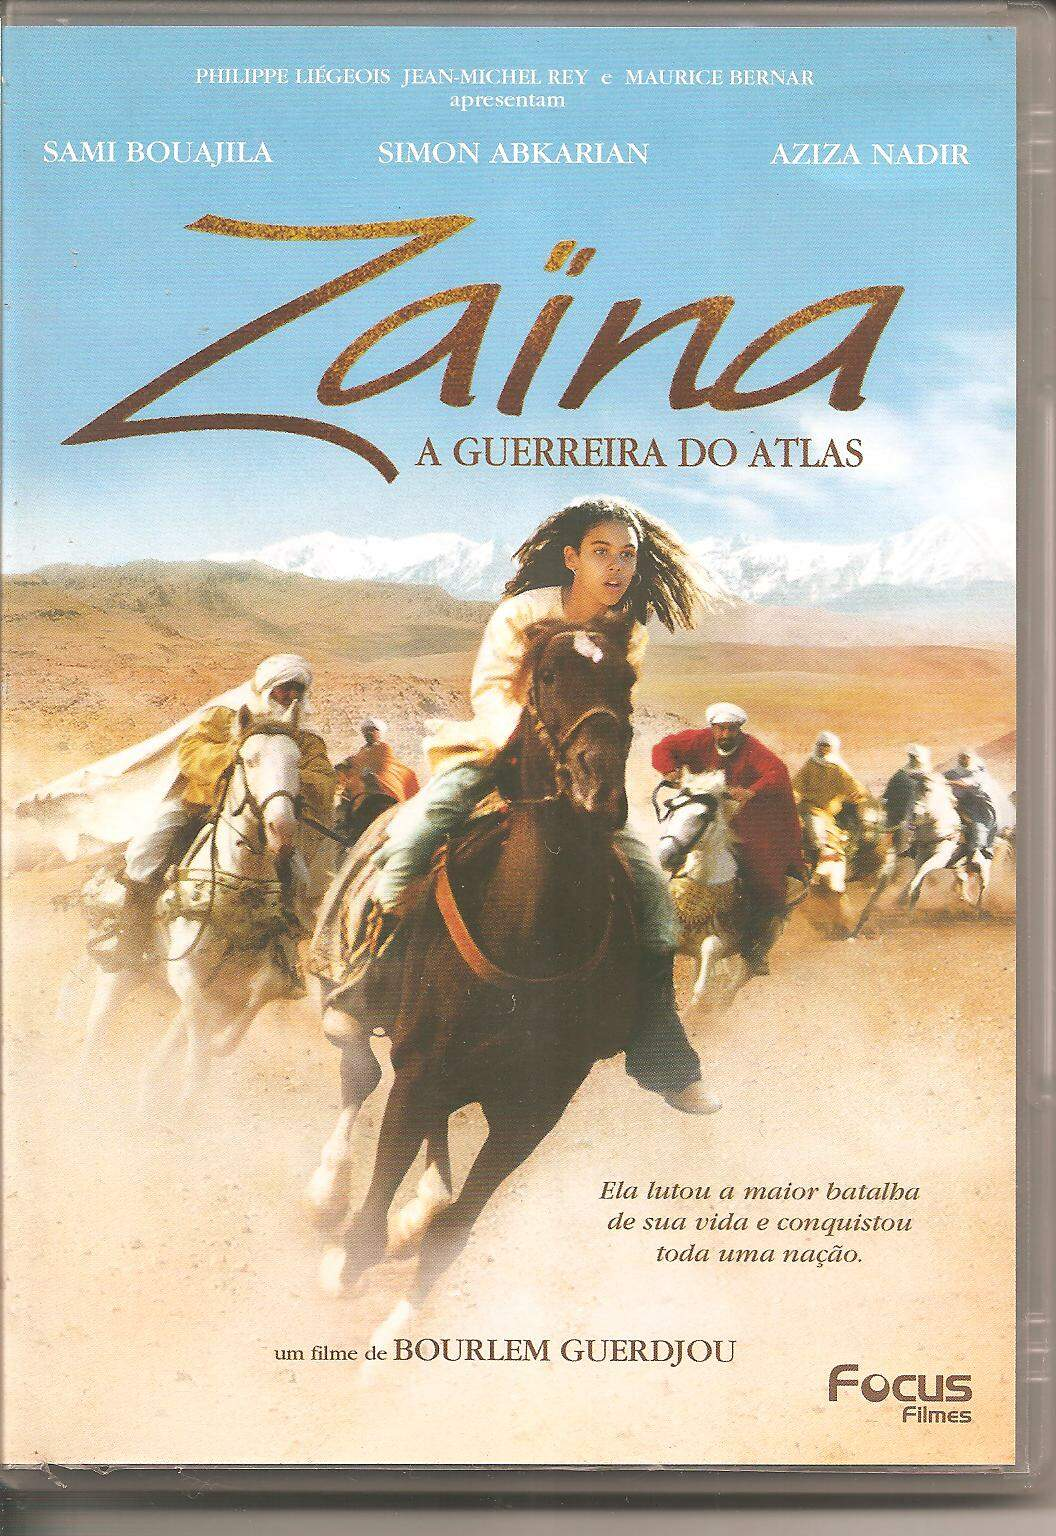 DVD ZAINA A GUERREIRA DO ATLAS